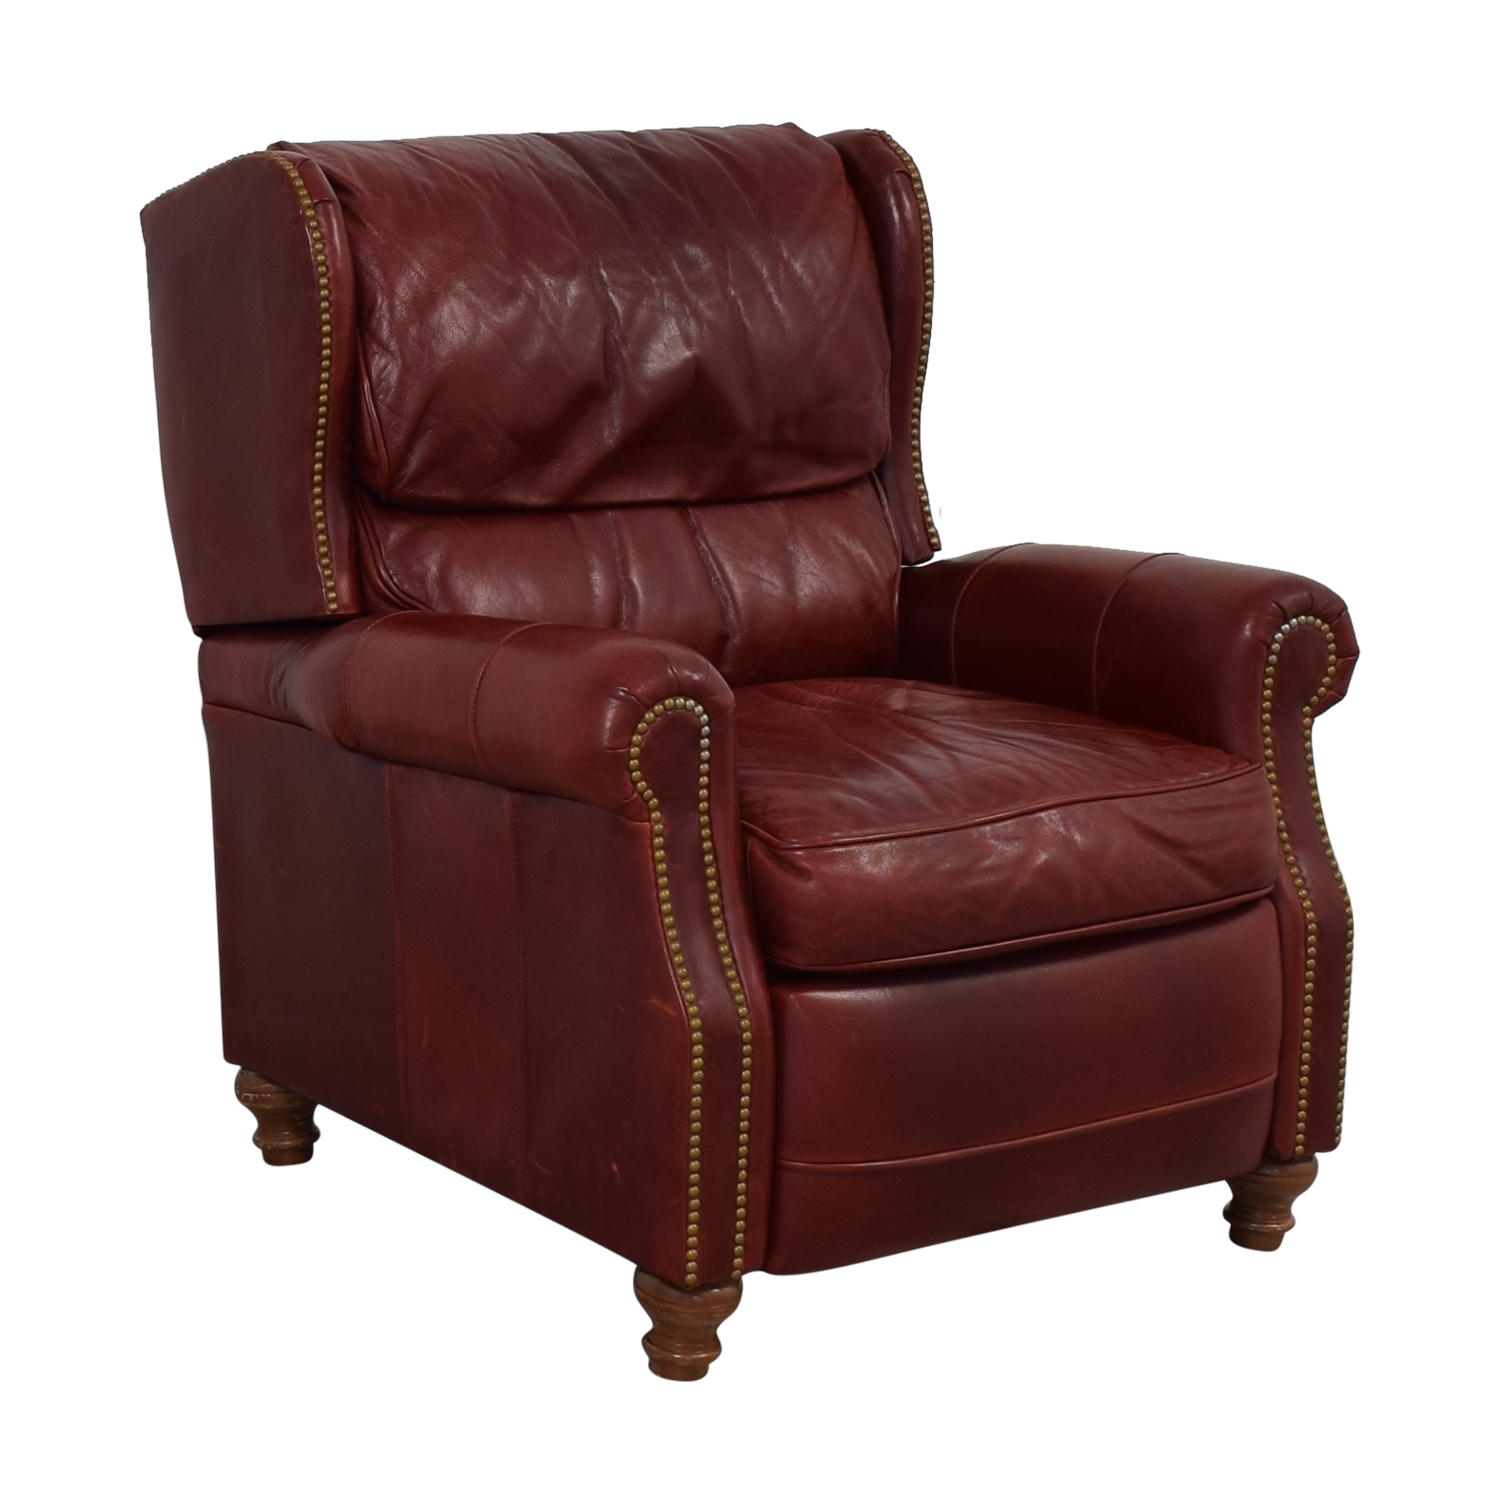 McKinley Leather Recliner / Recliners